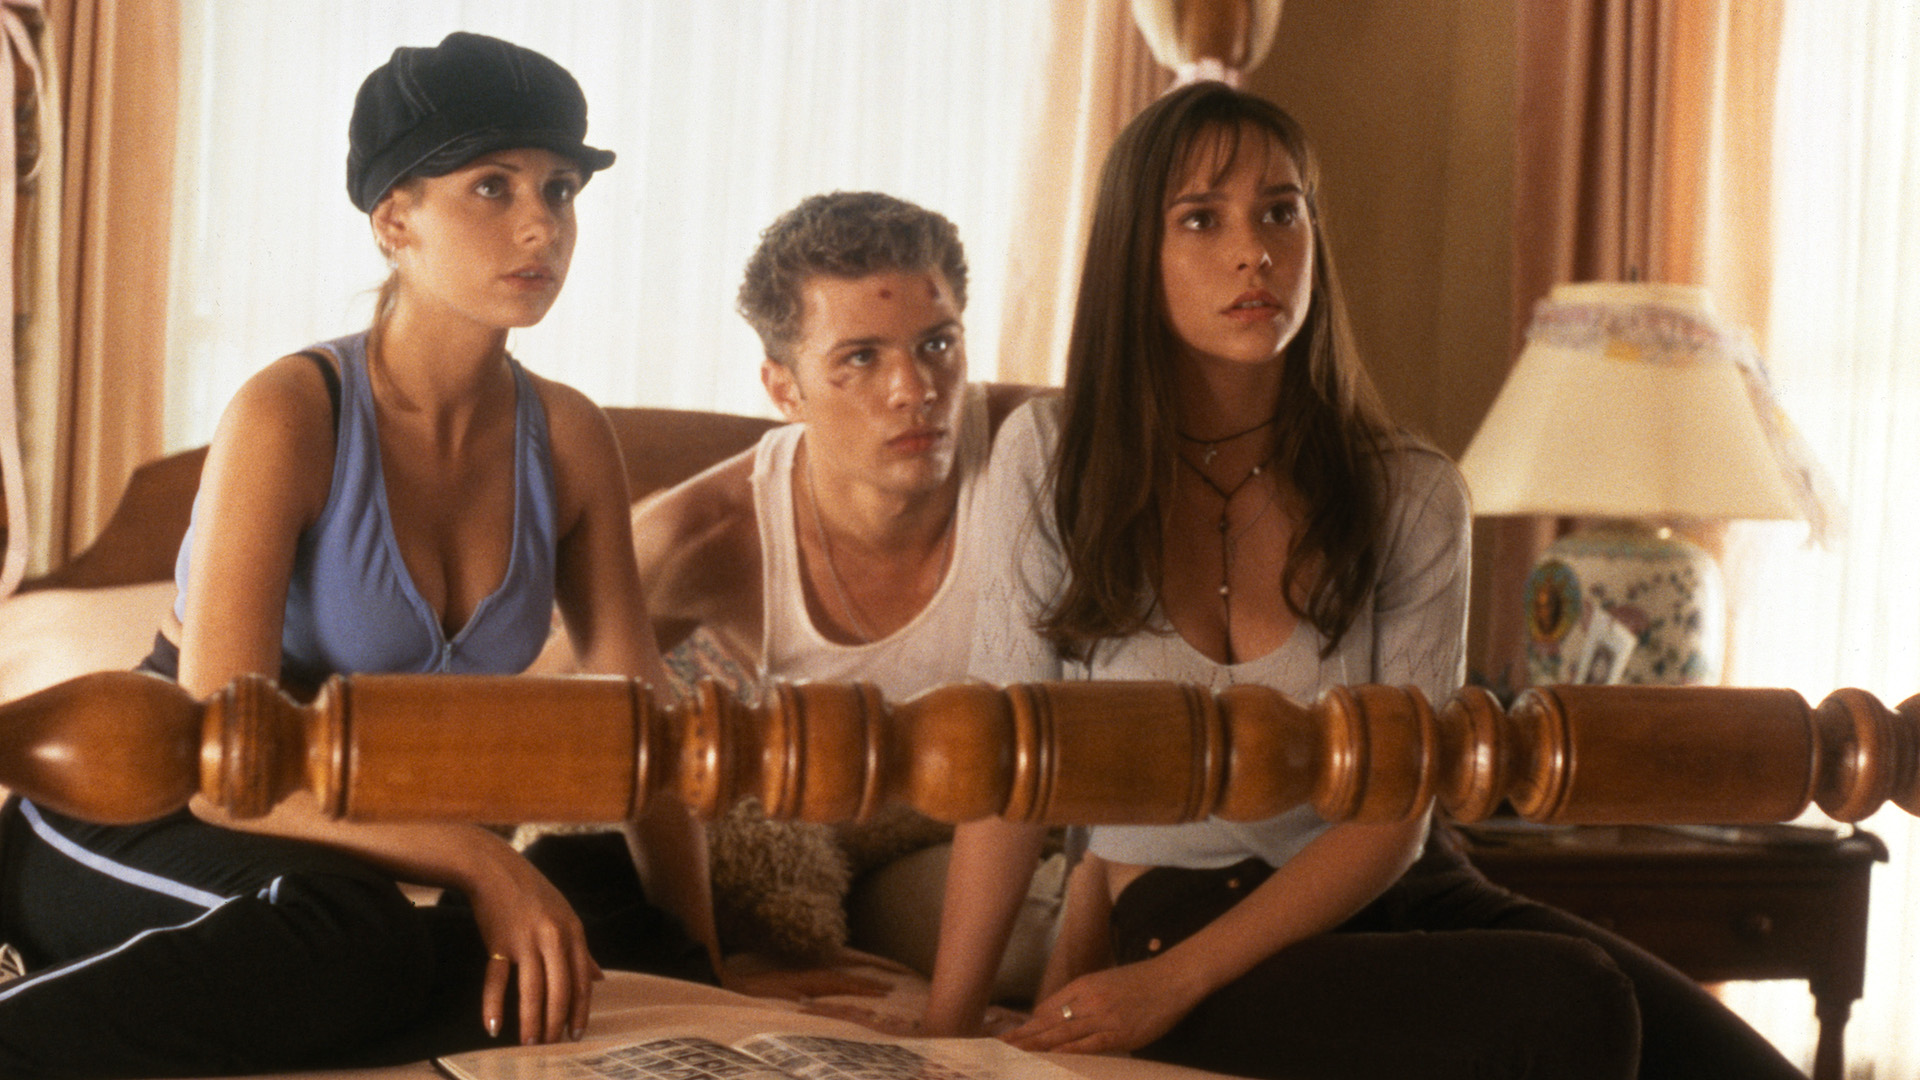 Sarah Michelle Geller, Jennifer Love Hewitt and Ryan Philippe sit on a bed in I Know What You Did Last Summer